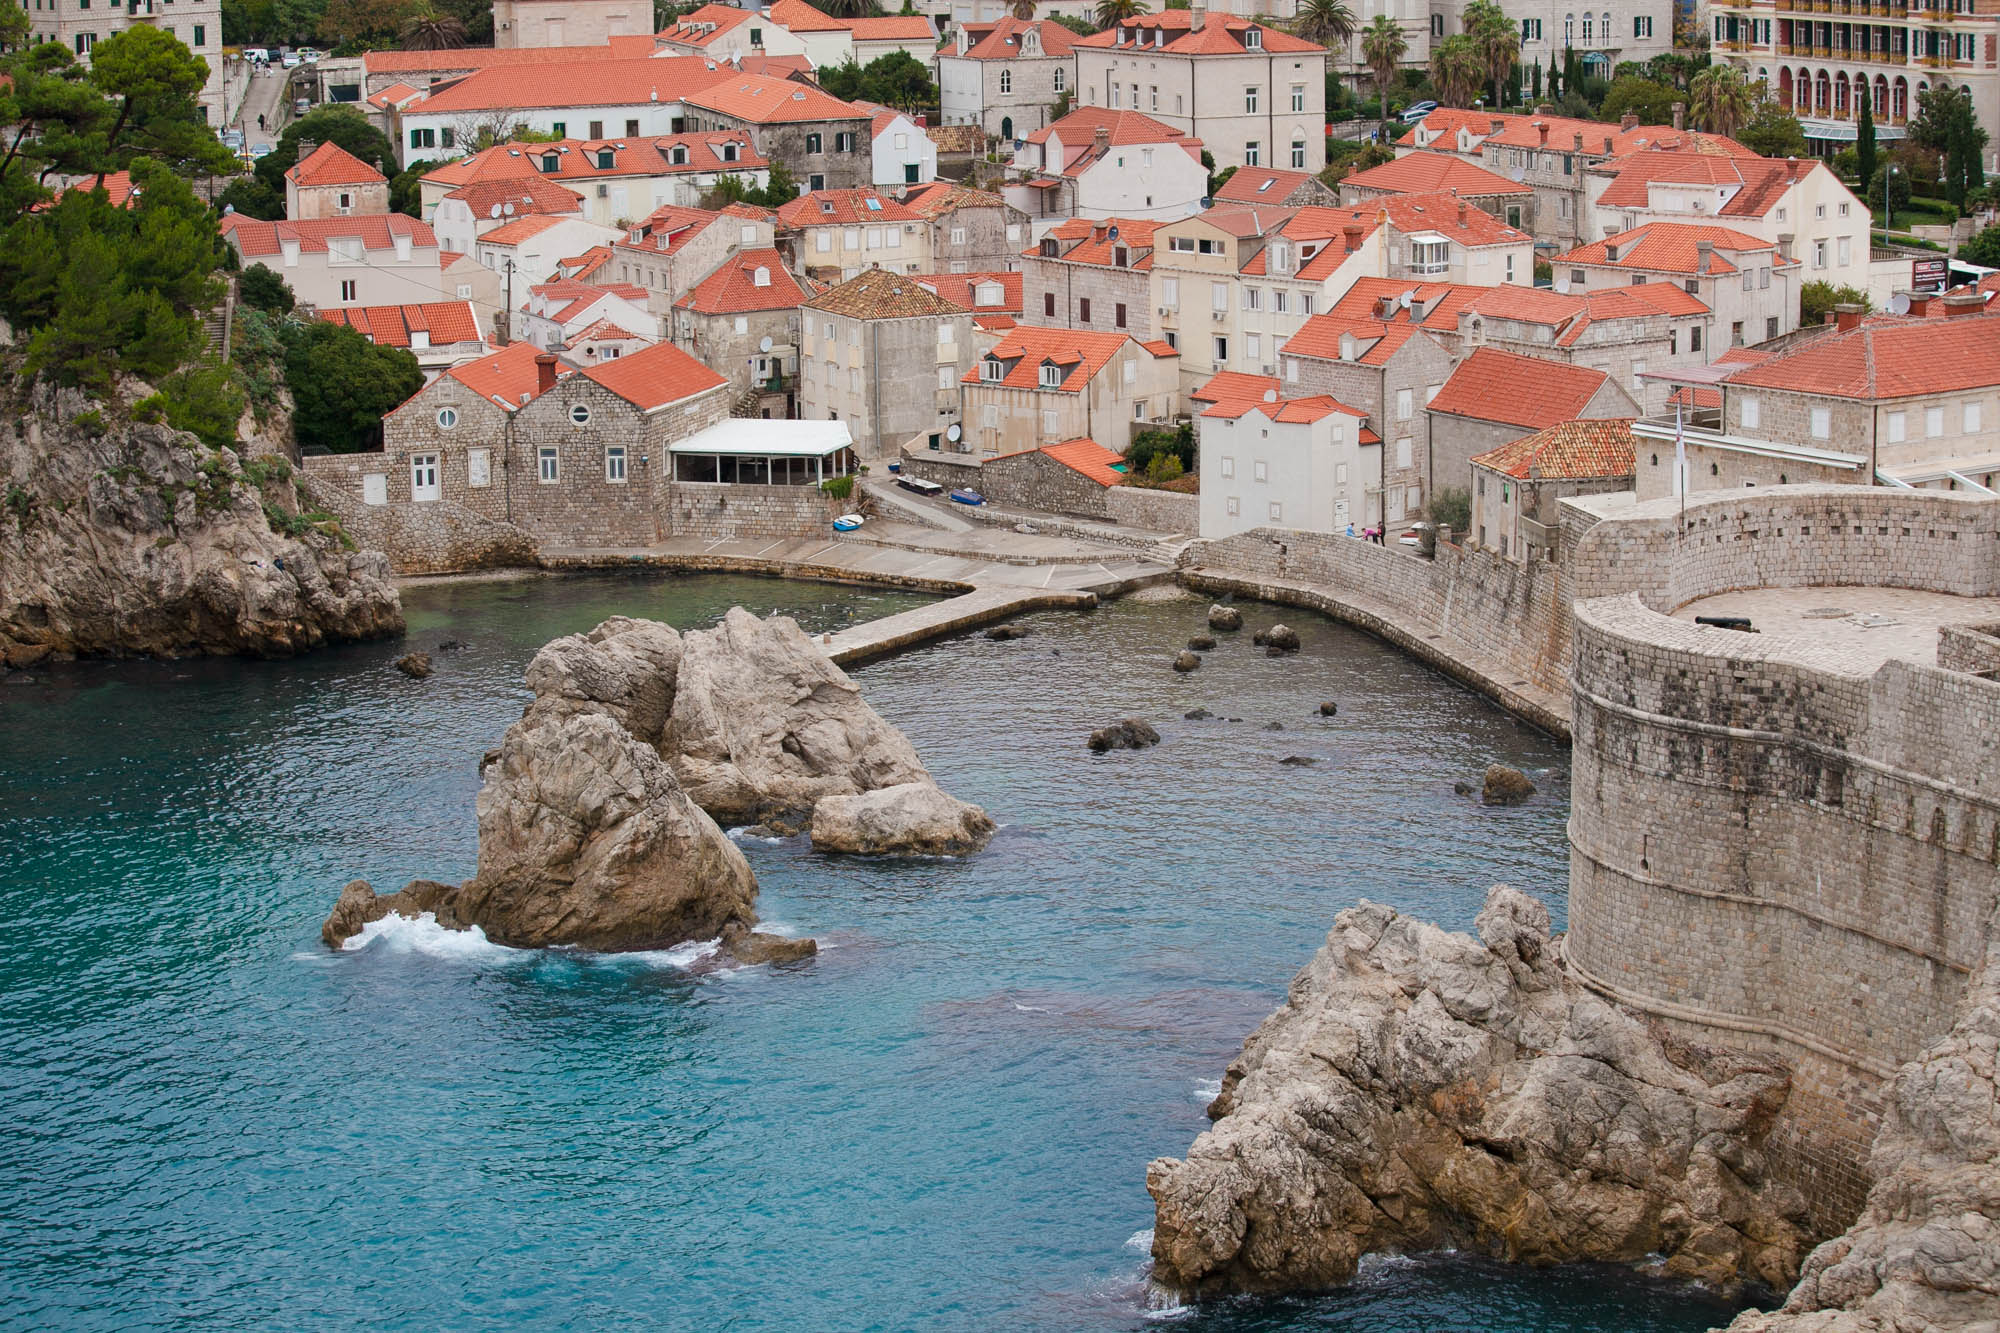 Old Dubrovnik waterfront